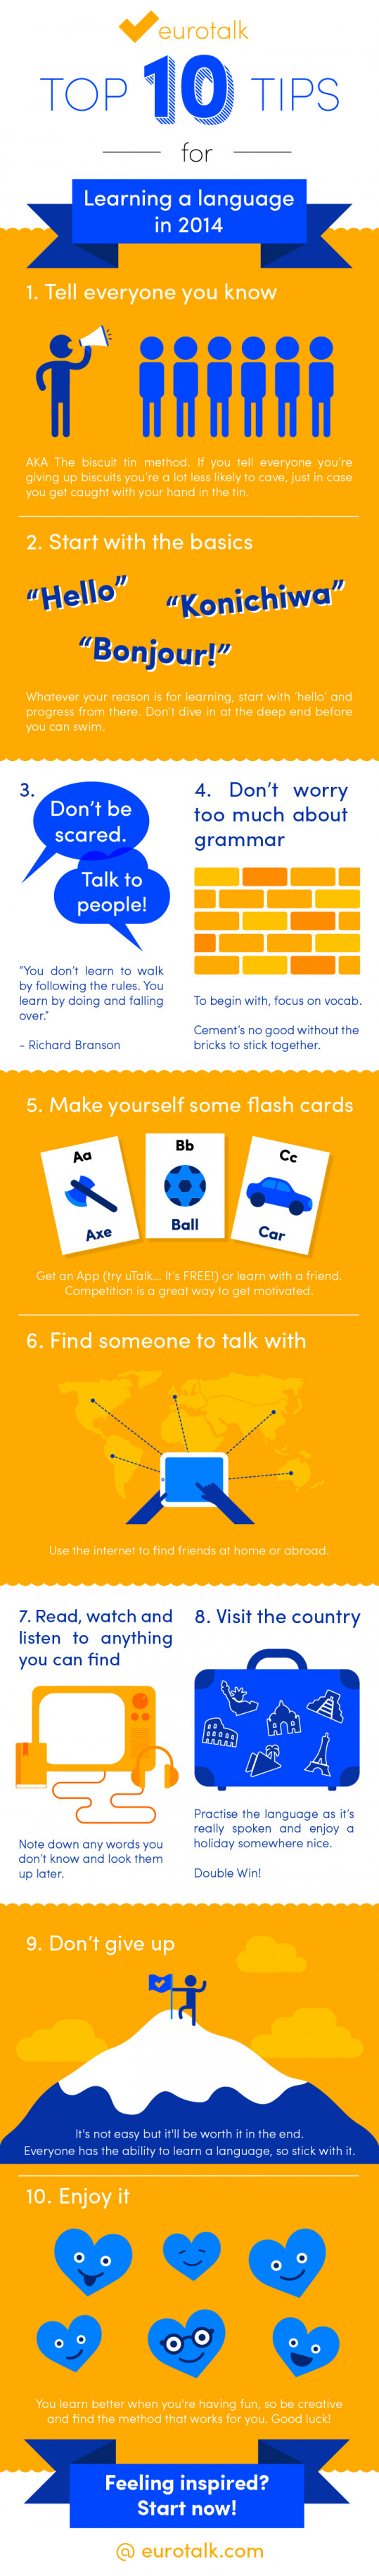 Top Ten Tips for Learning a Language in 2014